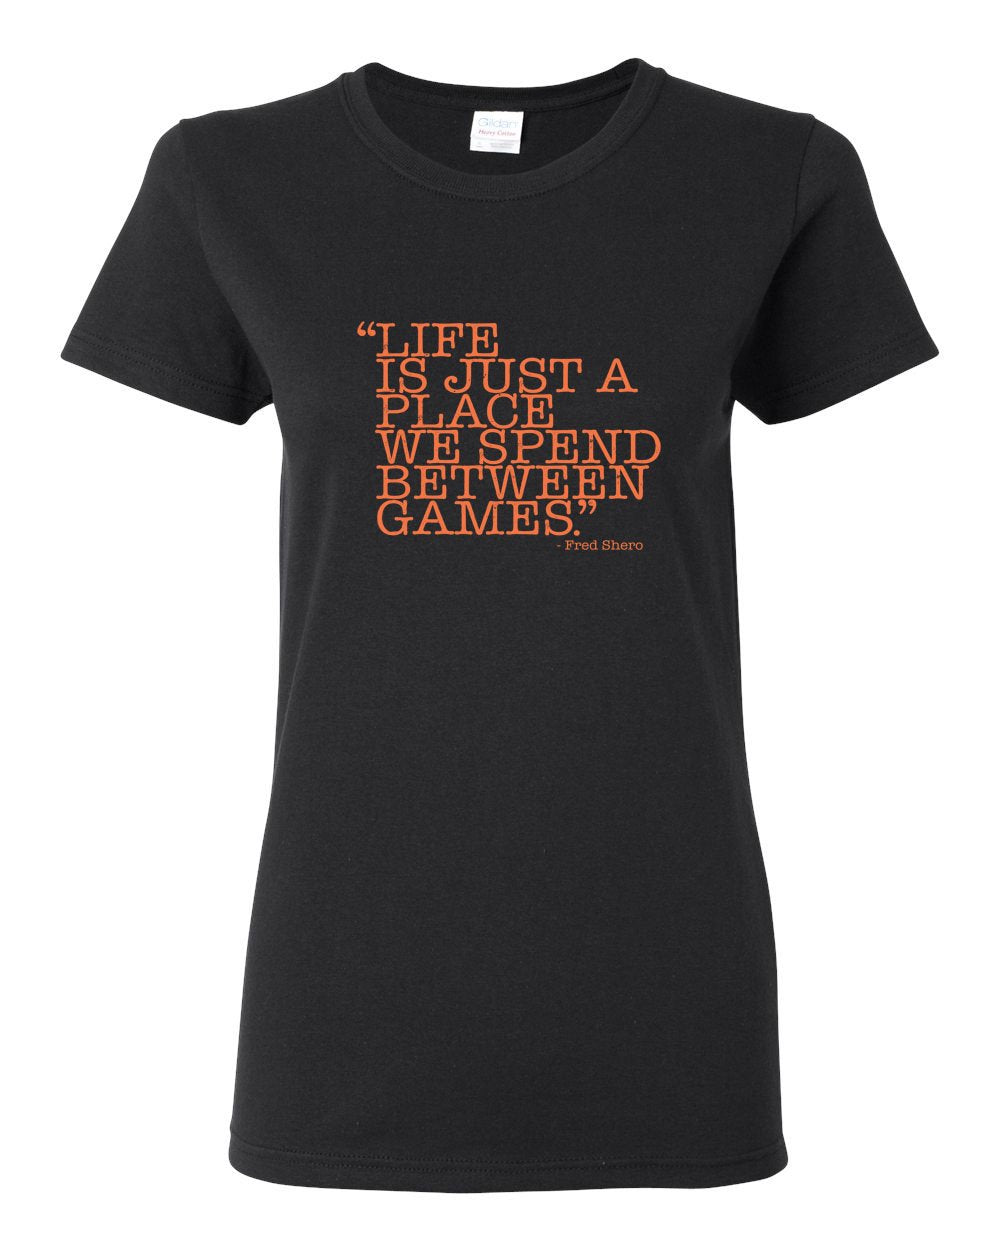 Between Games LADIES Missy-Fit T-Shirt